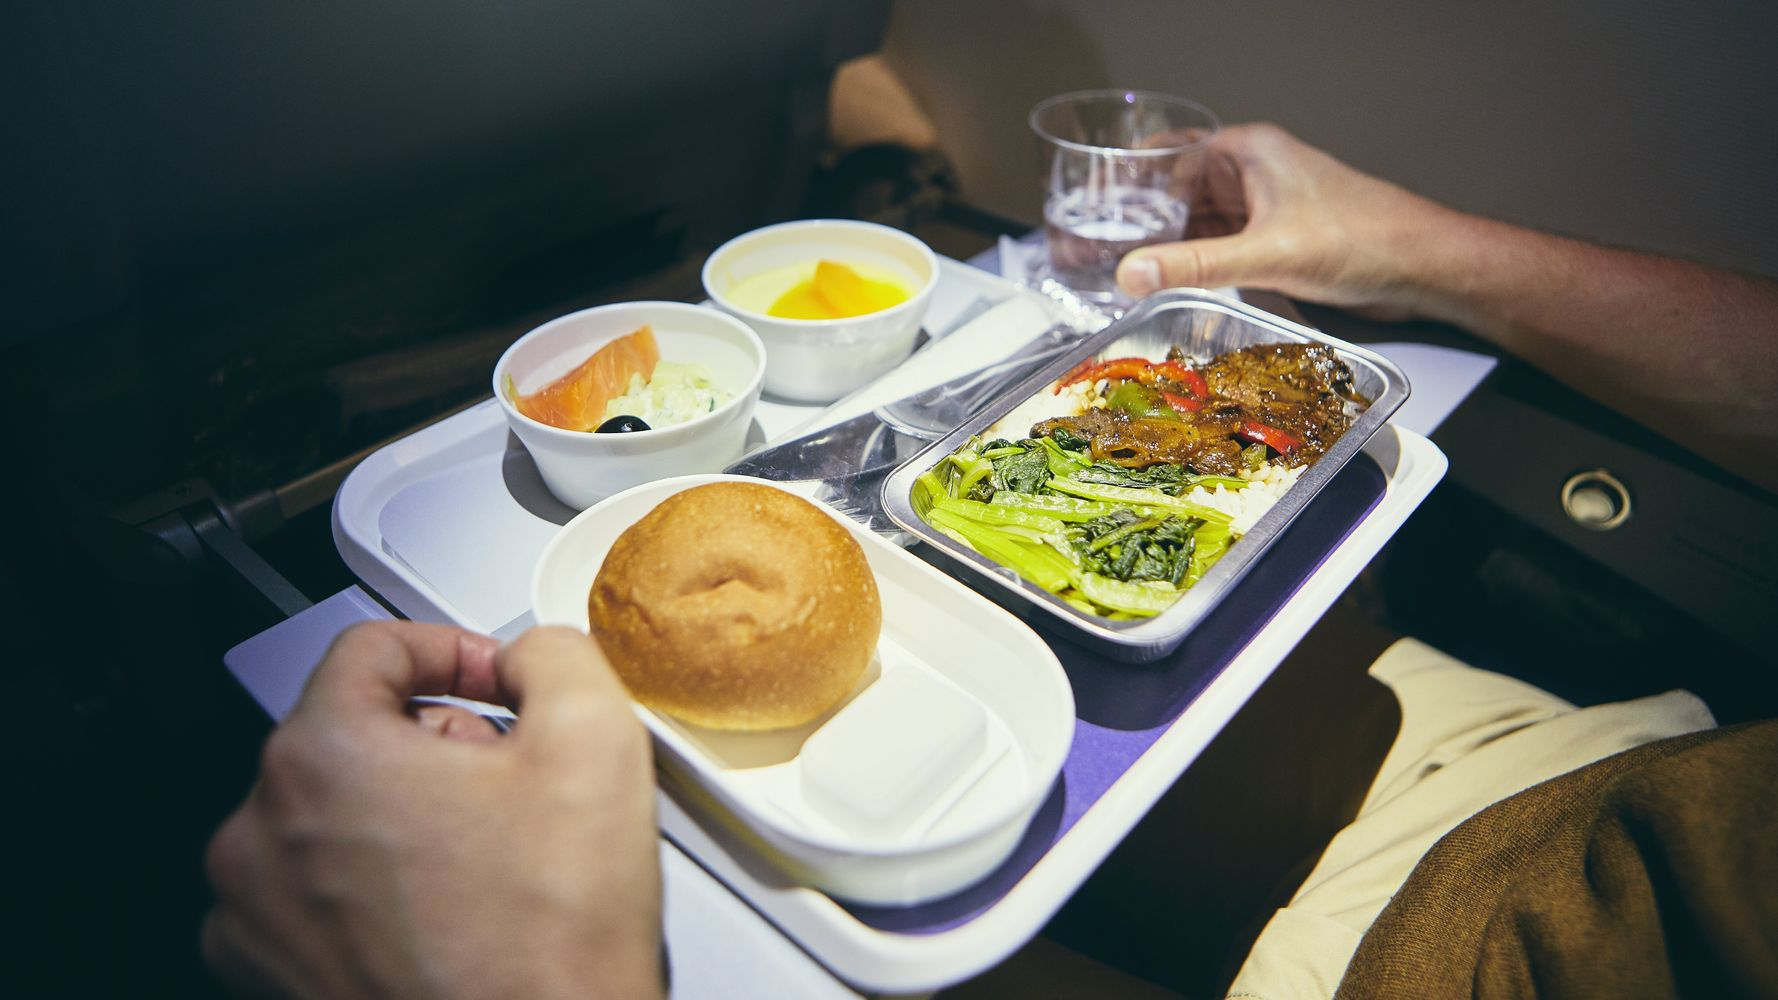 Discarded Plastic And Uneaten Food: The Shameful Story Of Airline Cabin Waste